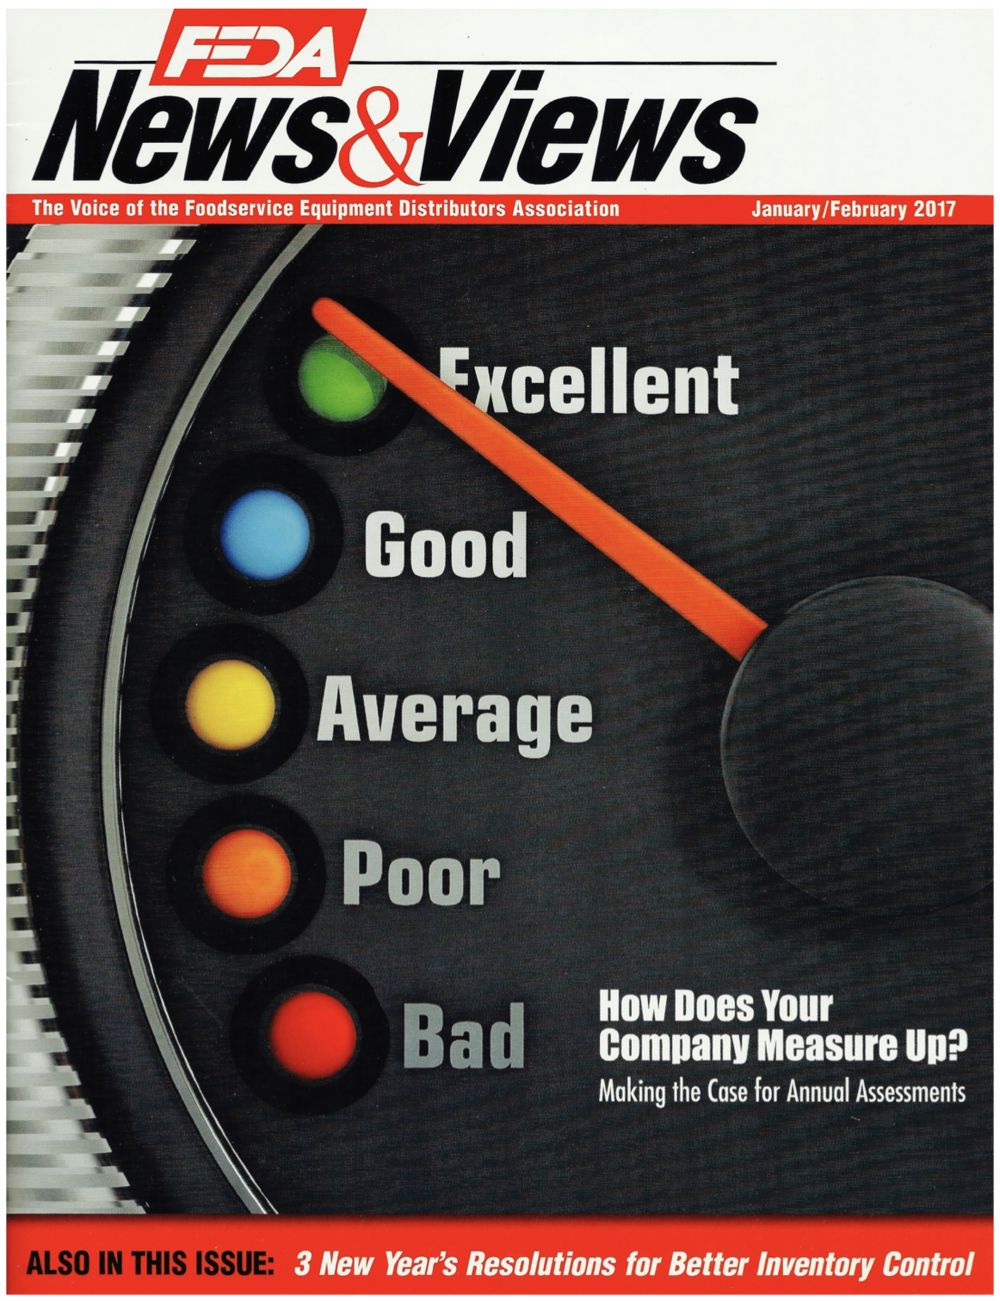 Read our cover story interview in the Industry Leading Foodservice Equipment Distributors Association Magazine. -